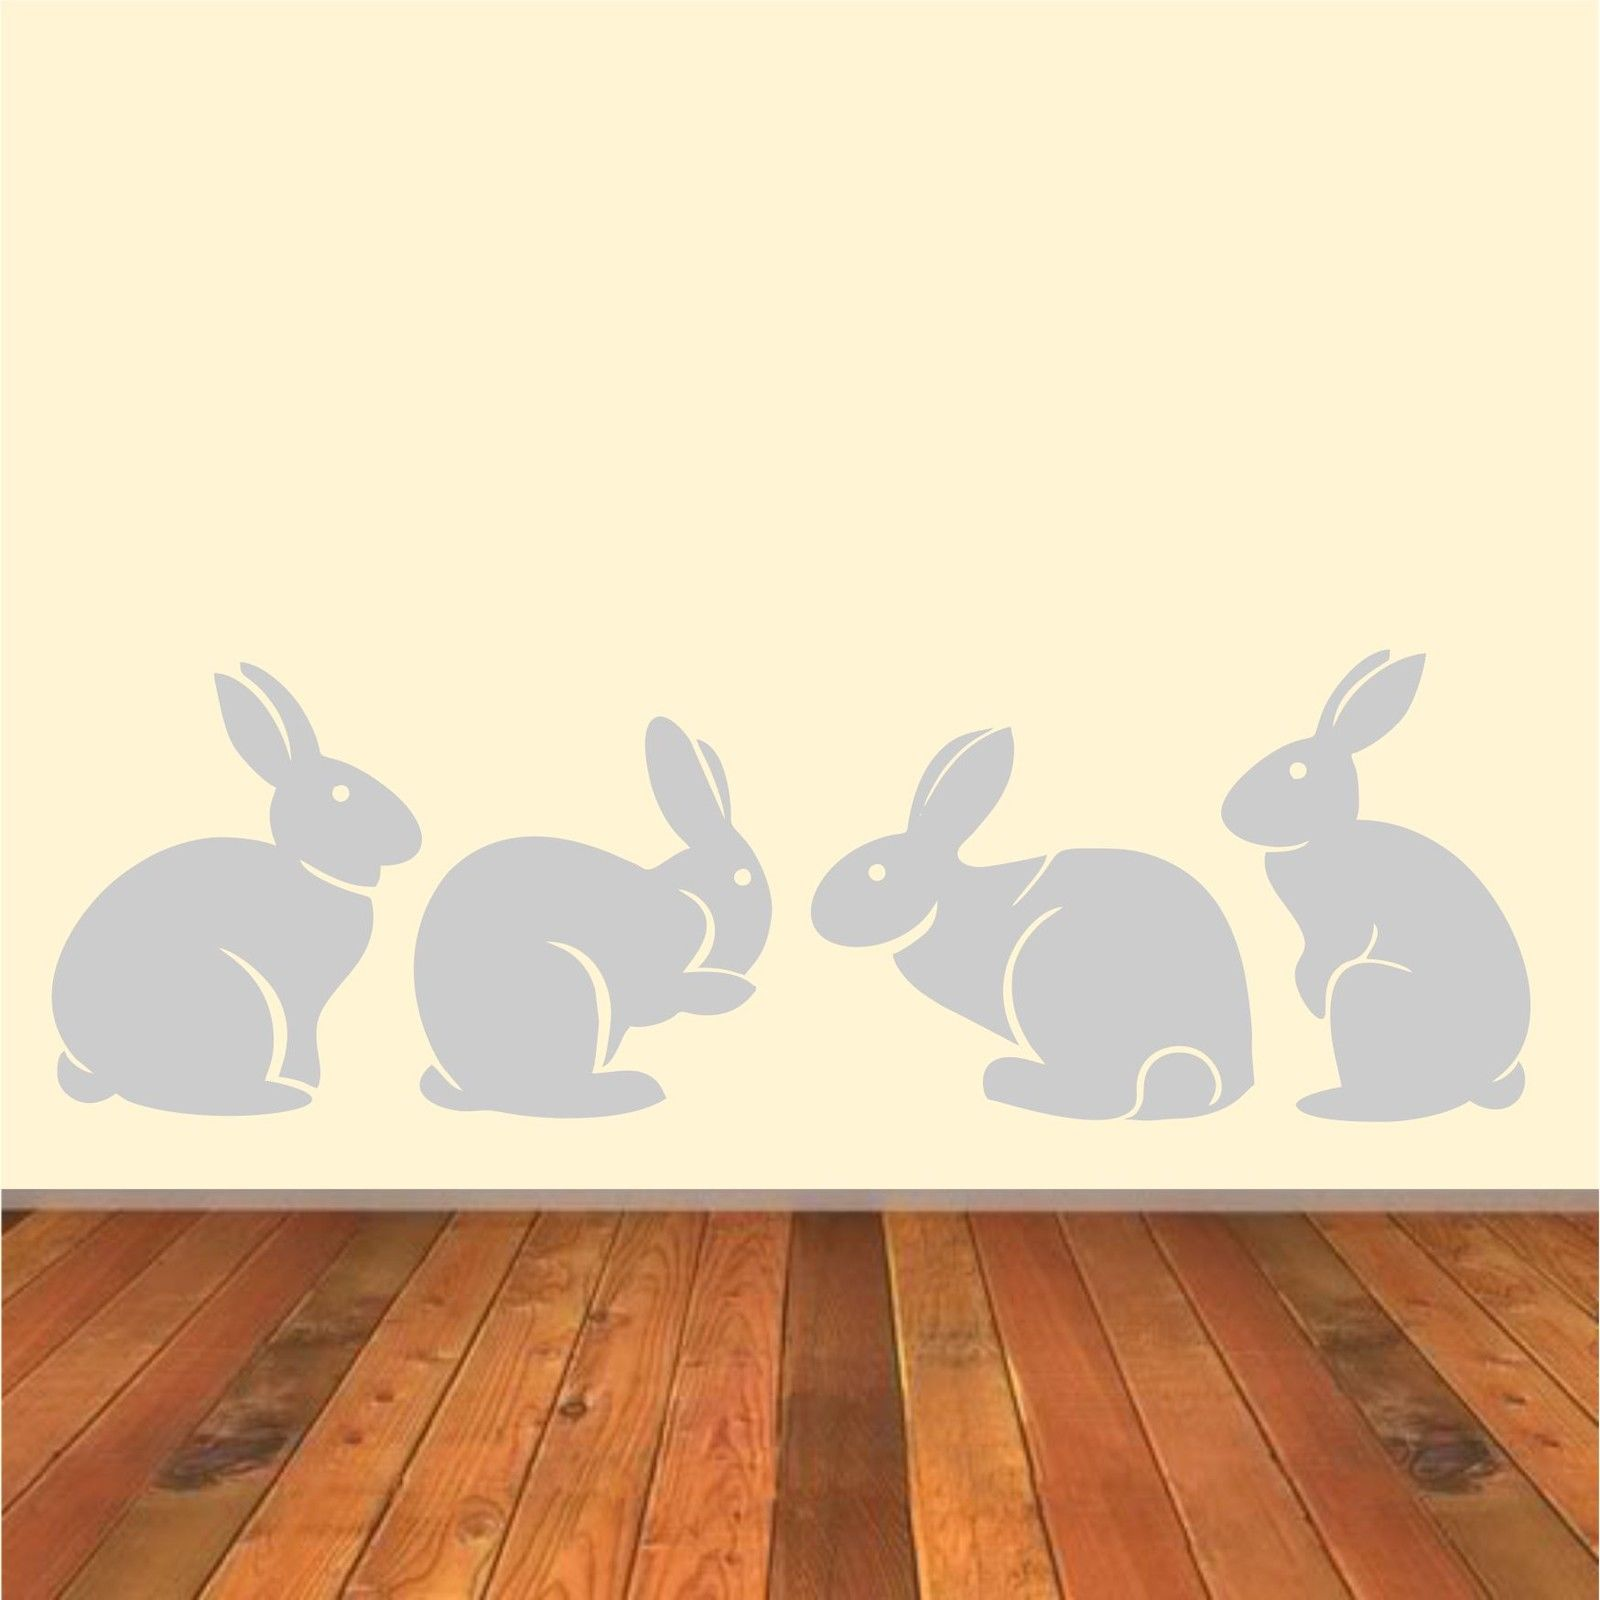 A007 Cute Bunny Rabbits Wall Sticker Baby Nursery Rabbitits Wall - Տնային դեկոր - Լուսանկար 3